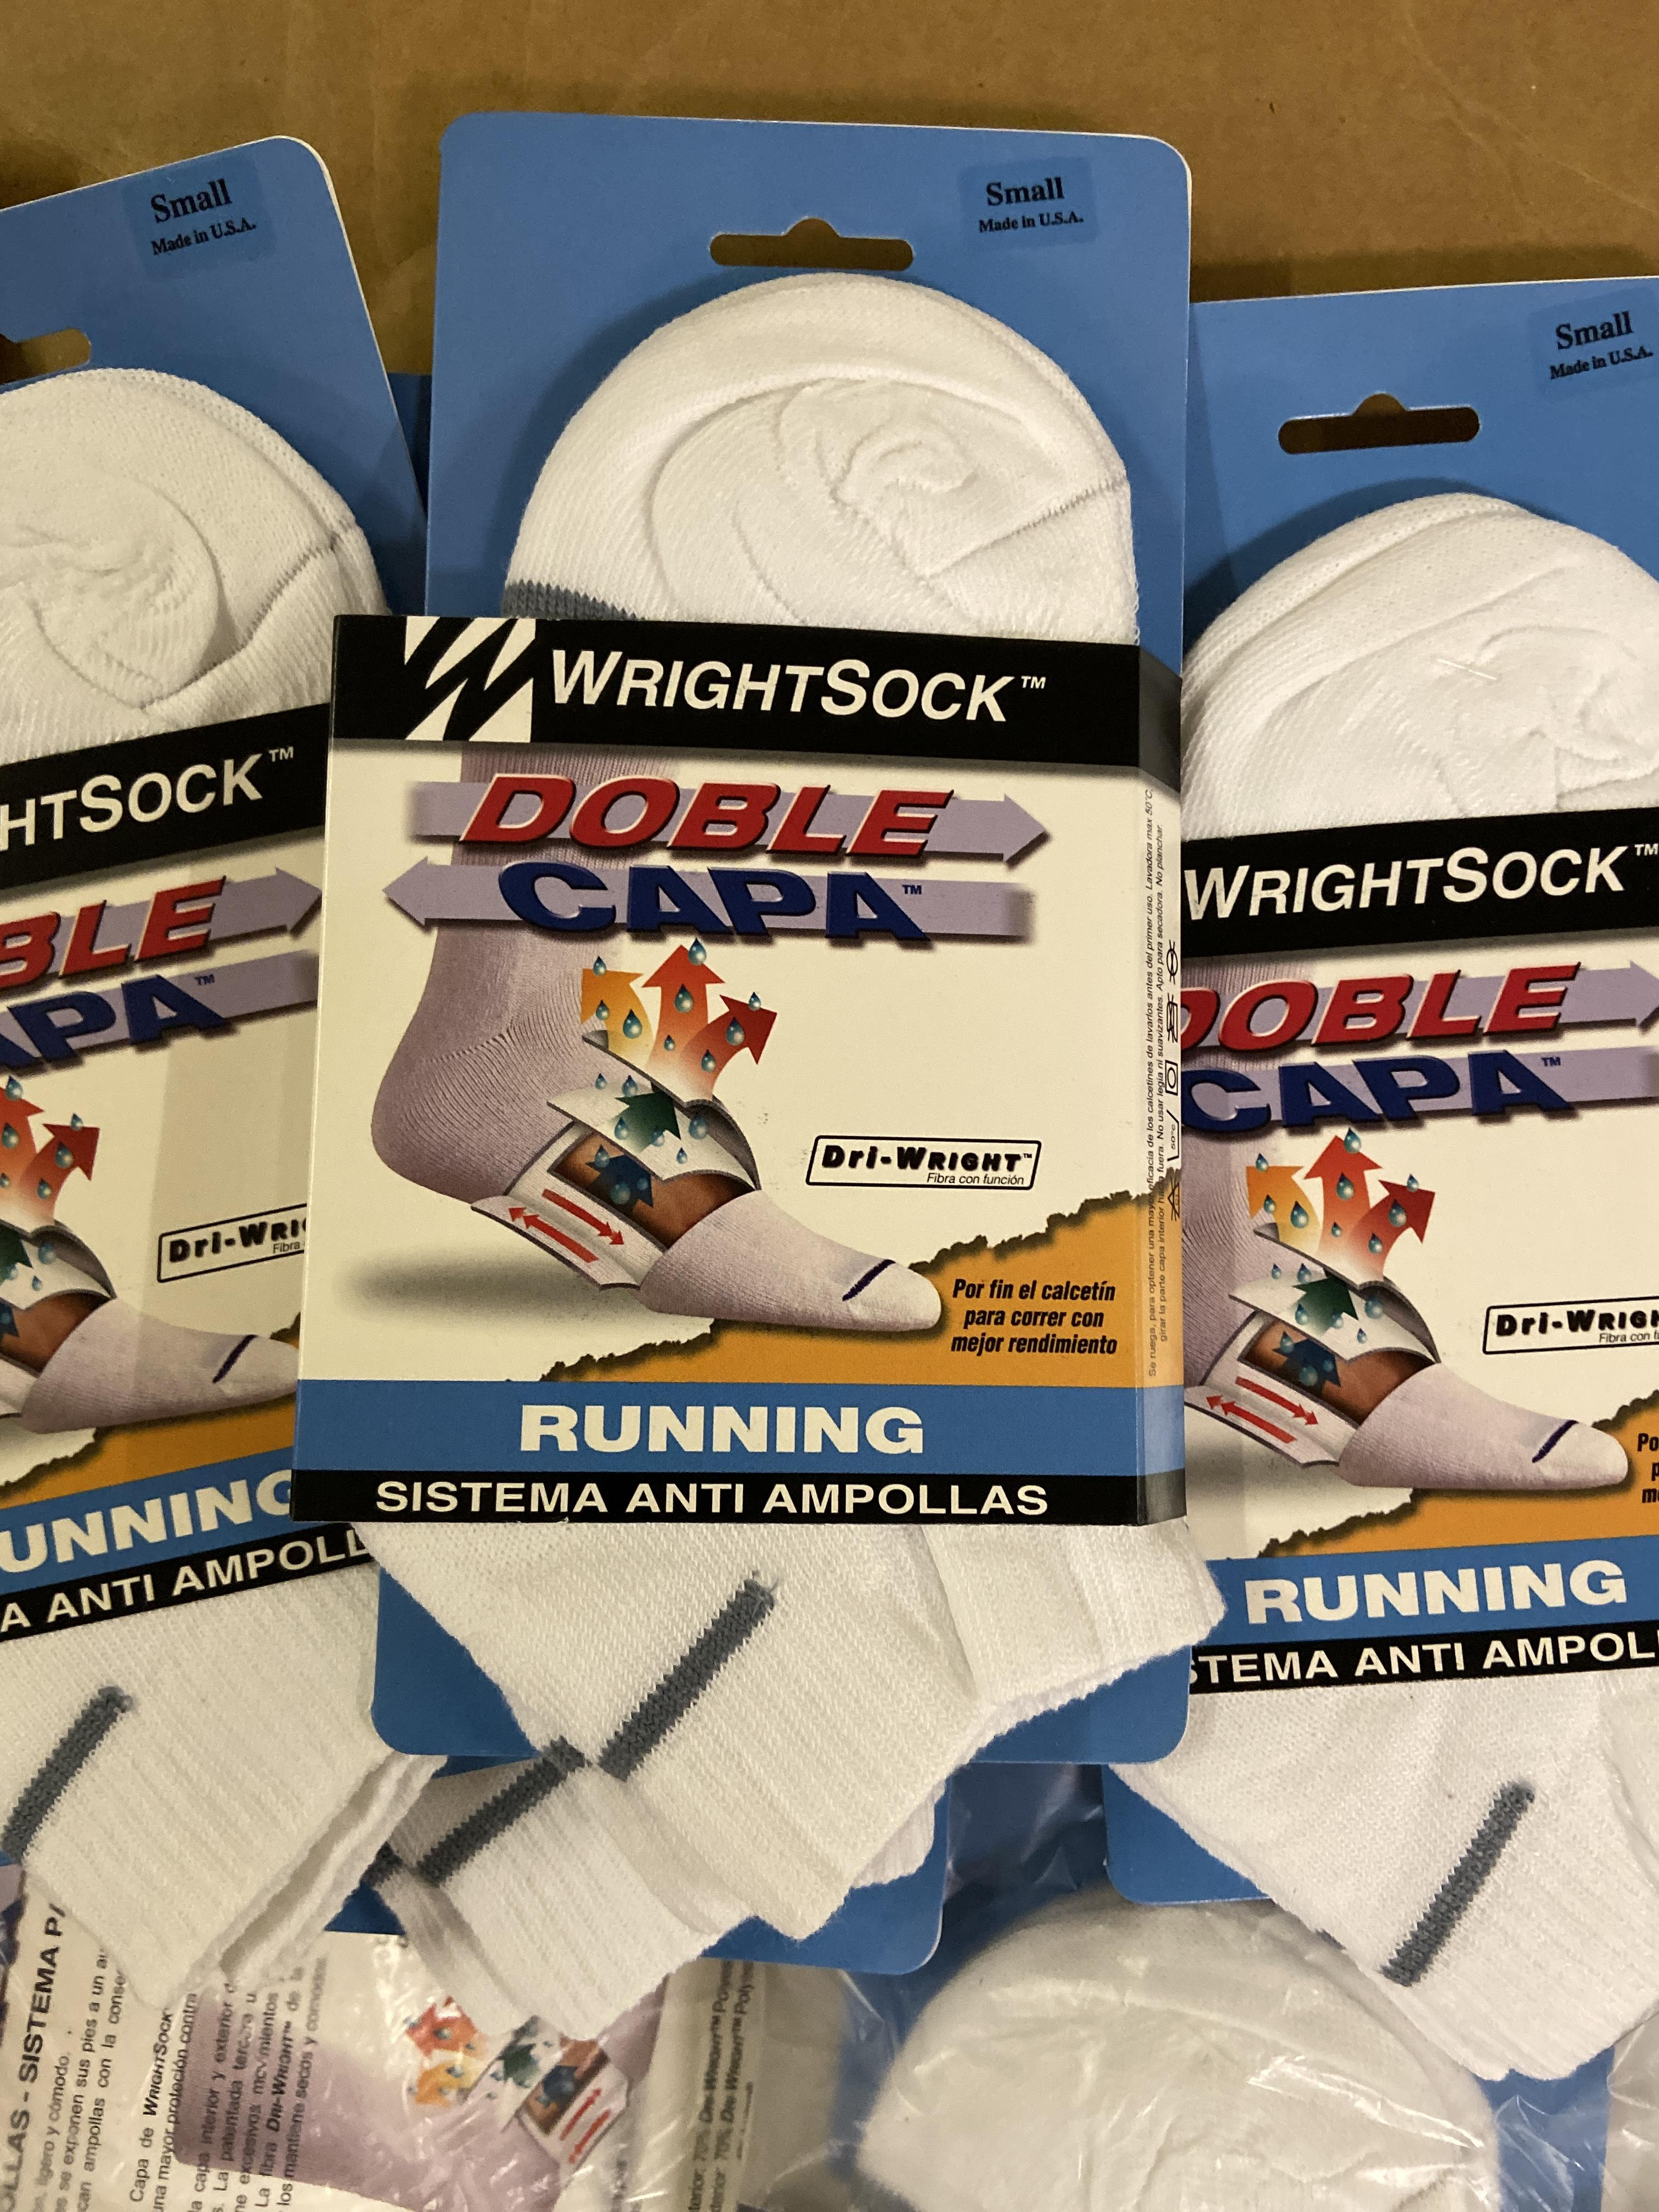 500+ packs of New Socks, Wrightsock Running and Coolmesh, Double Layer, White w. Various Stripes - Image 6 of 7